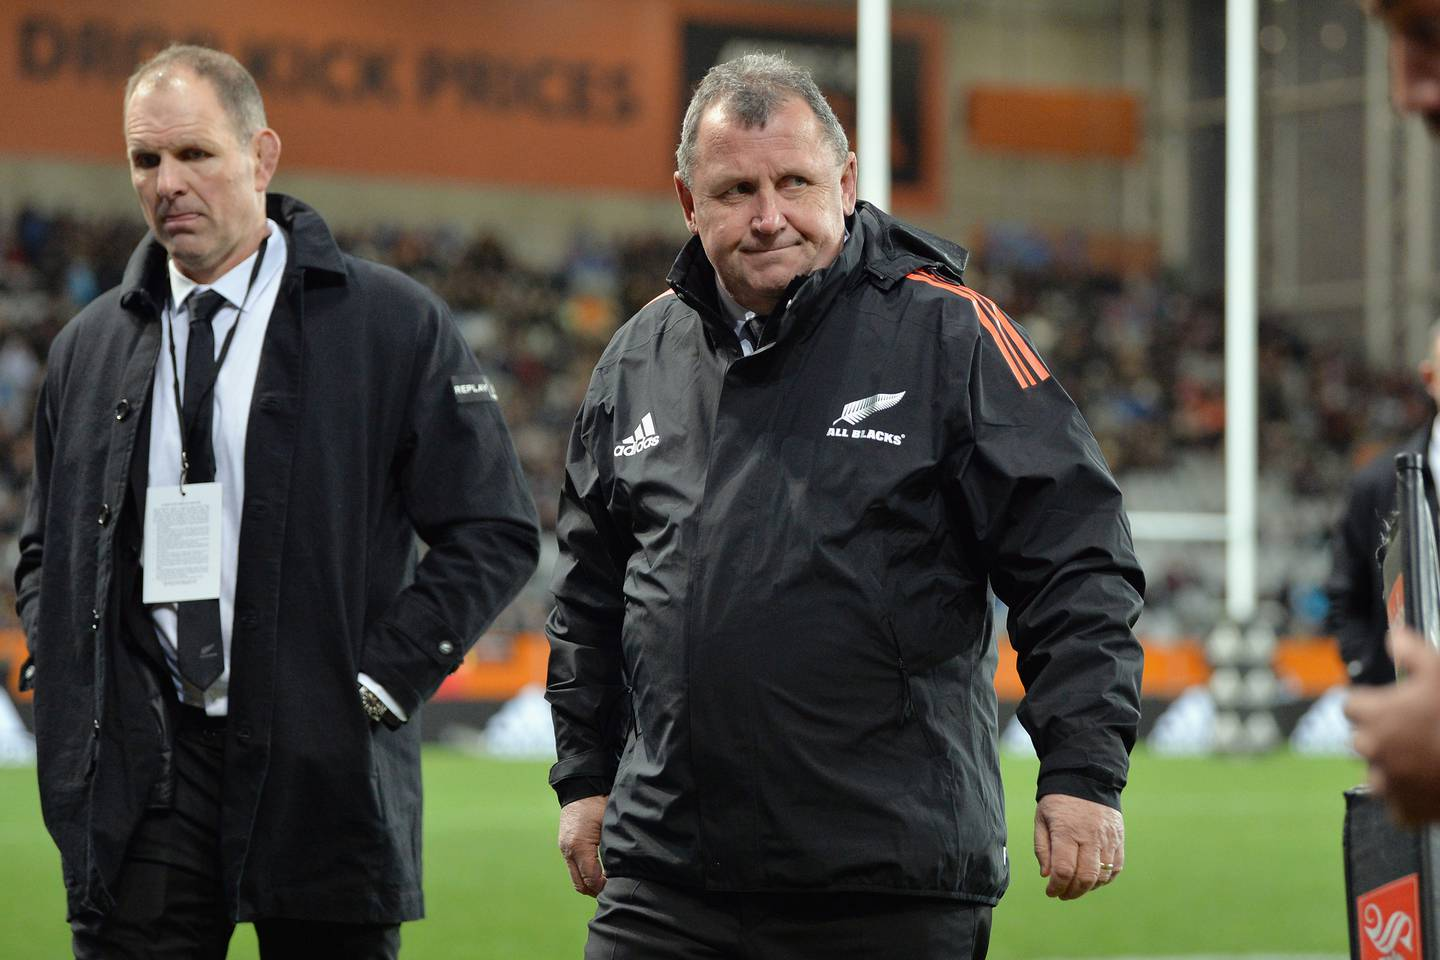 All Blacks Head Coach Ian Foster looks on prior to the International Test Match between the New Zealand All Blacks and Fiji. Photo / Getty Images.